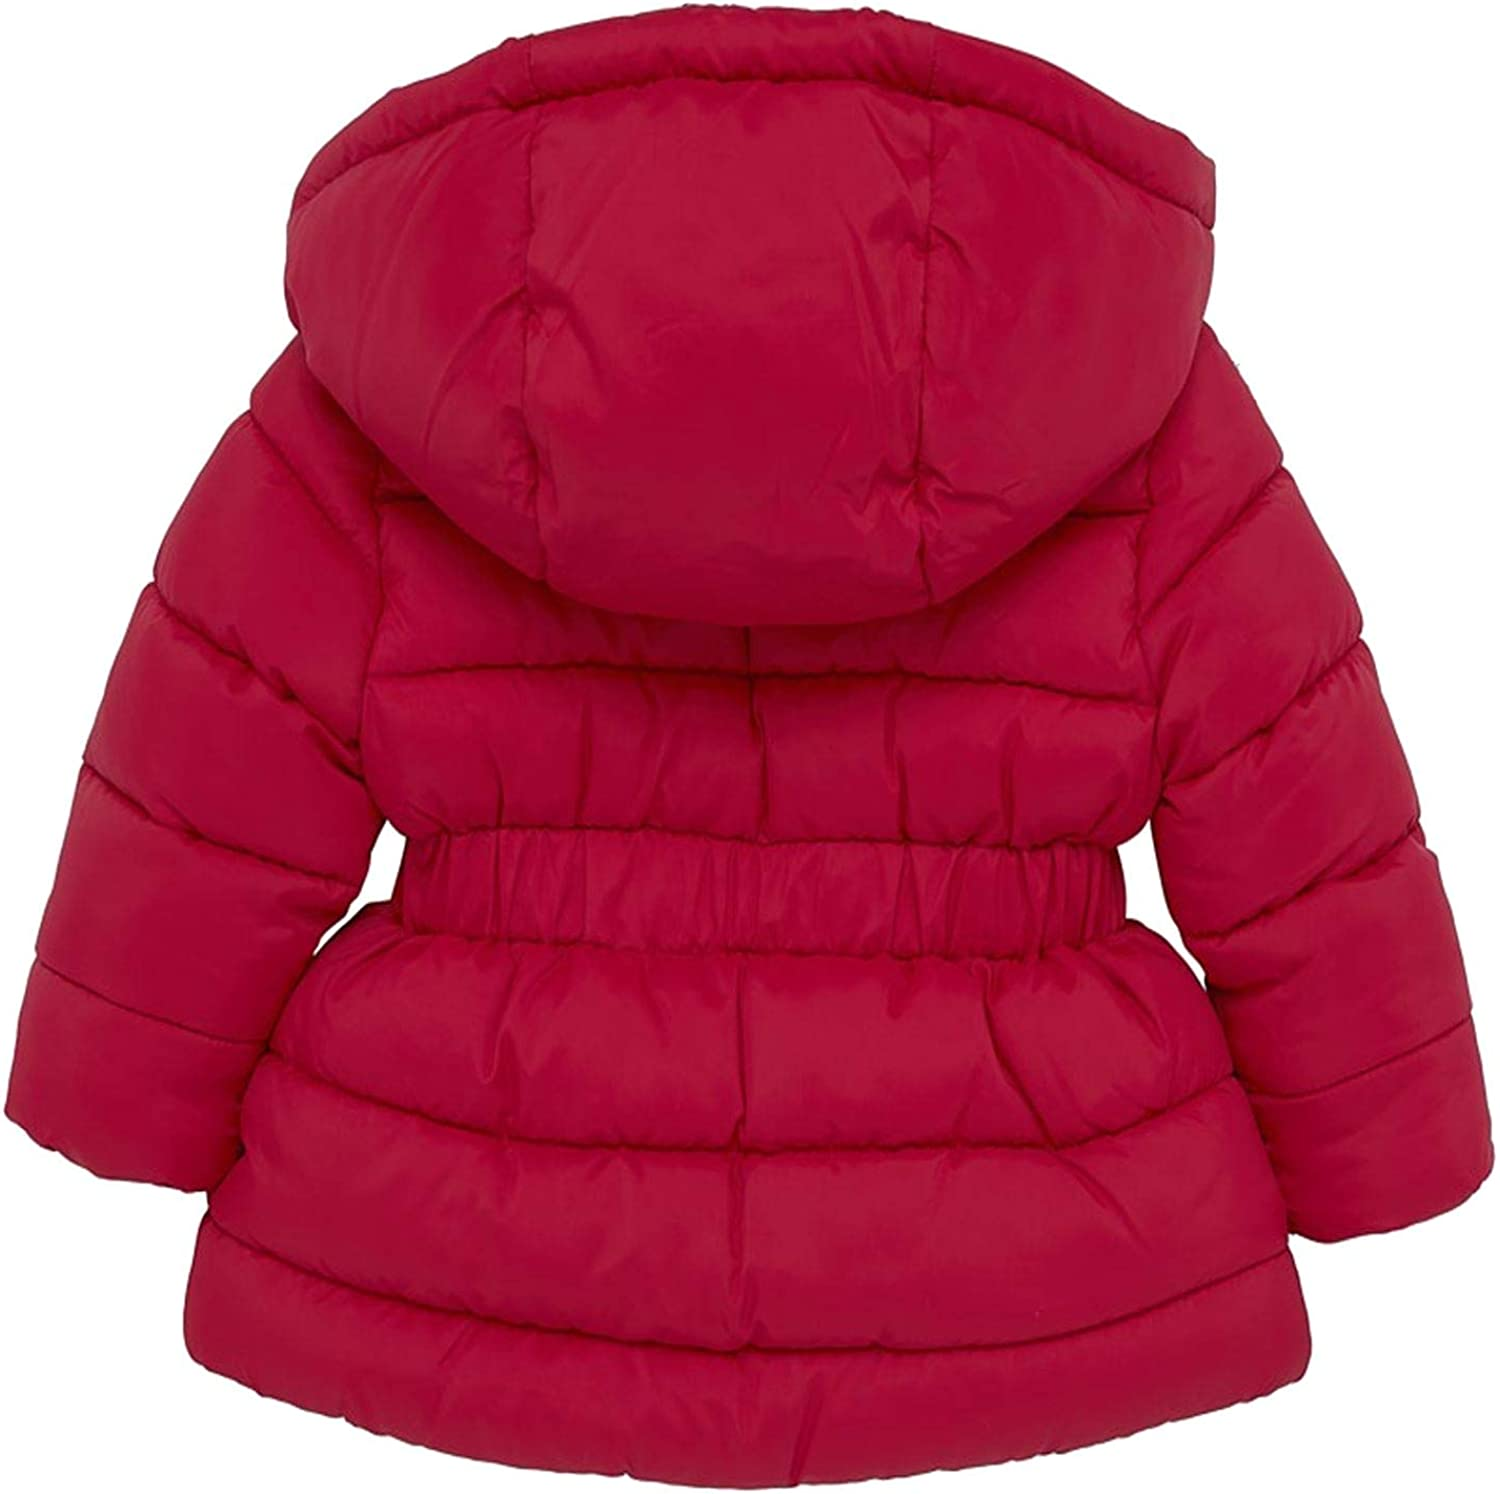 Red 414. Girls Baby Toddler Quilted Jacket Lined and Padded Winter Coat Mayoral